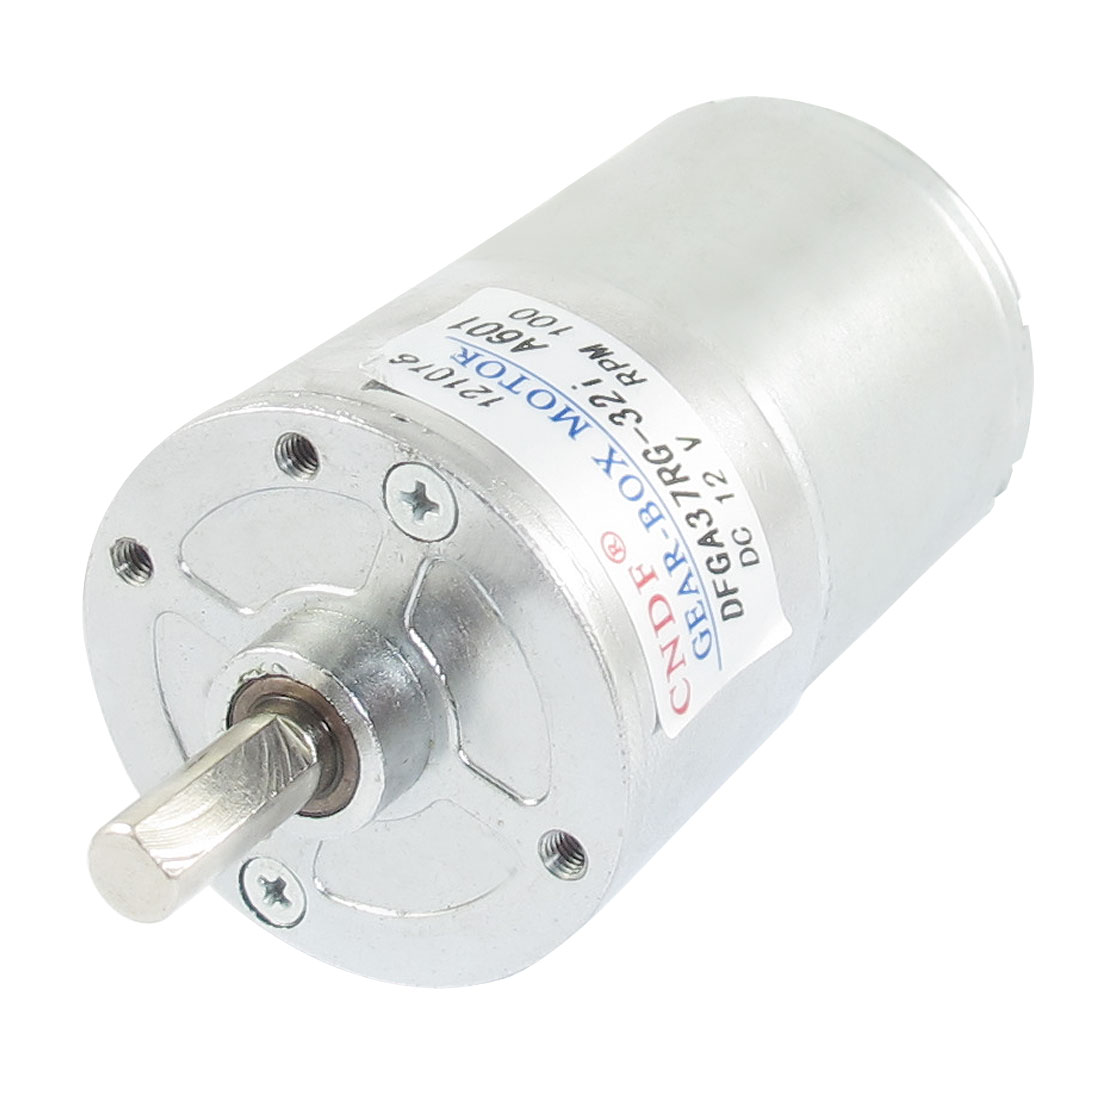 DC 12V 100RPM Output Speed Cylinder Shaped Oven Geared Motor